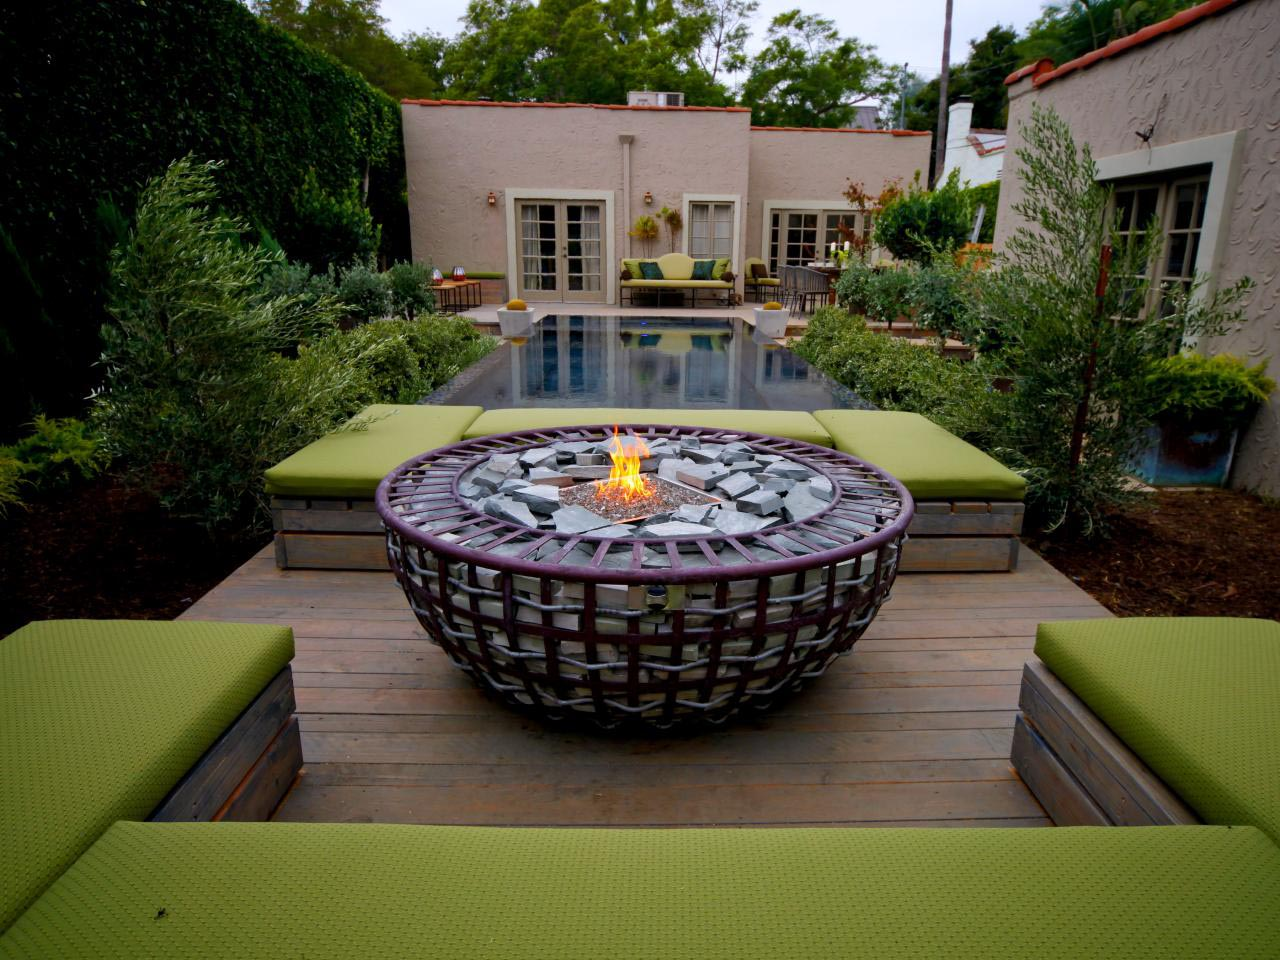 Simple backyard fire pit ideas fire pit design ideas for Simple backyard garden designs